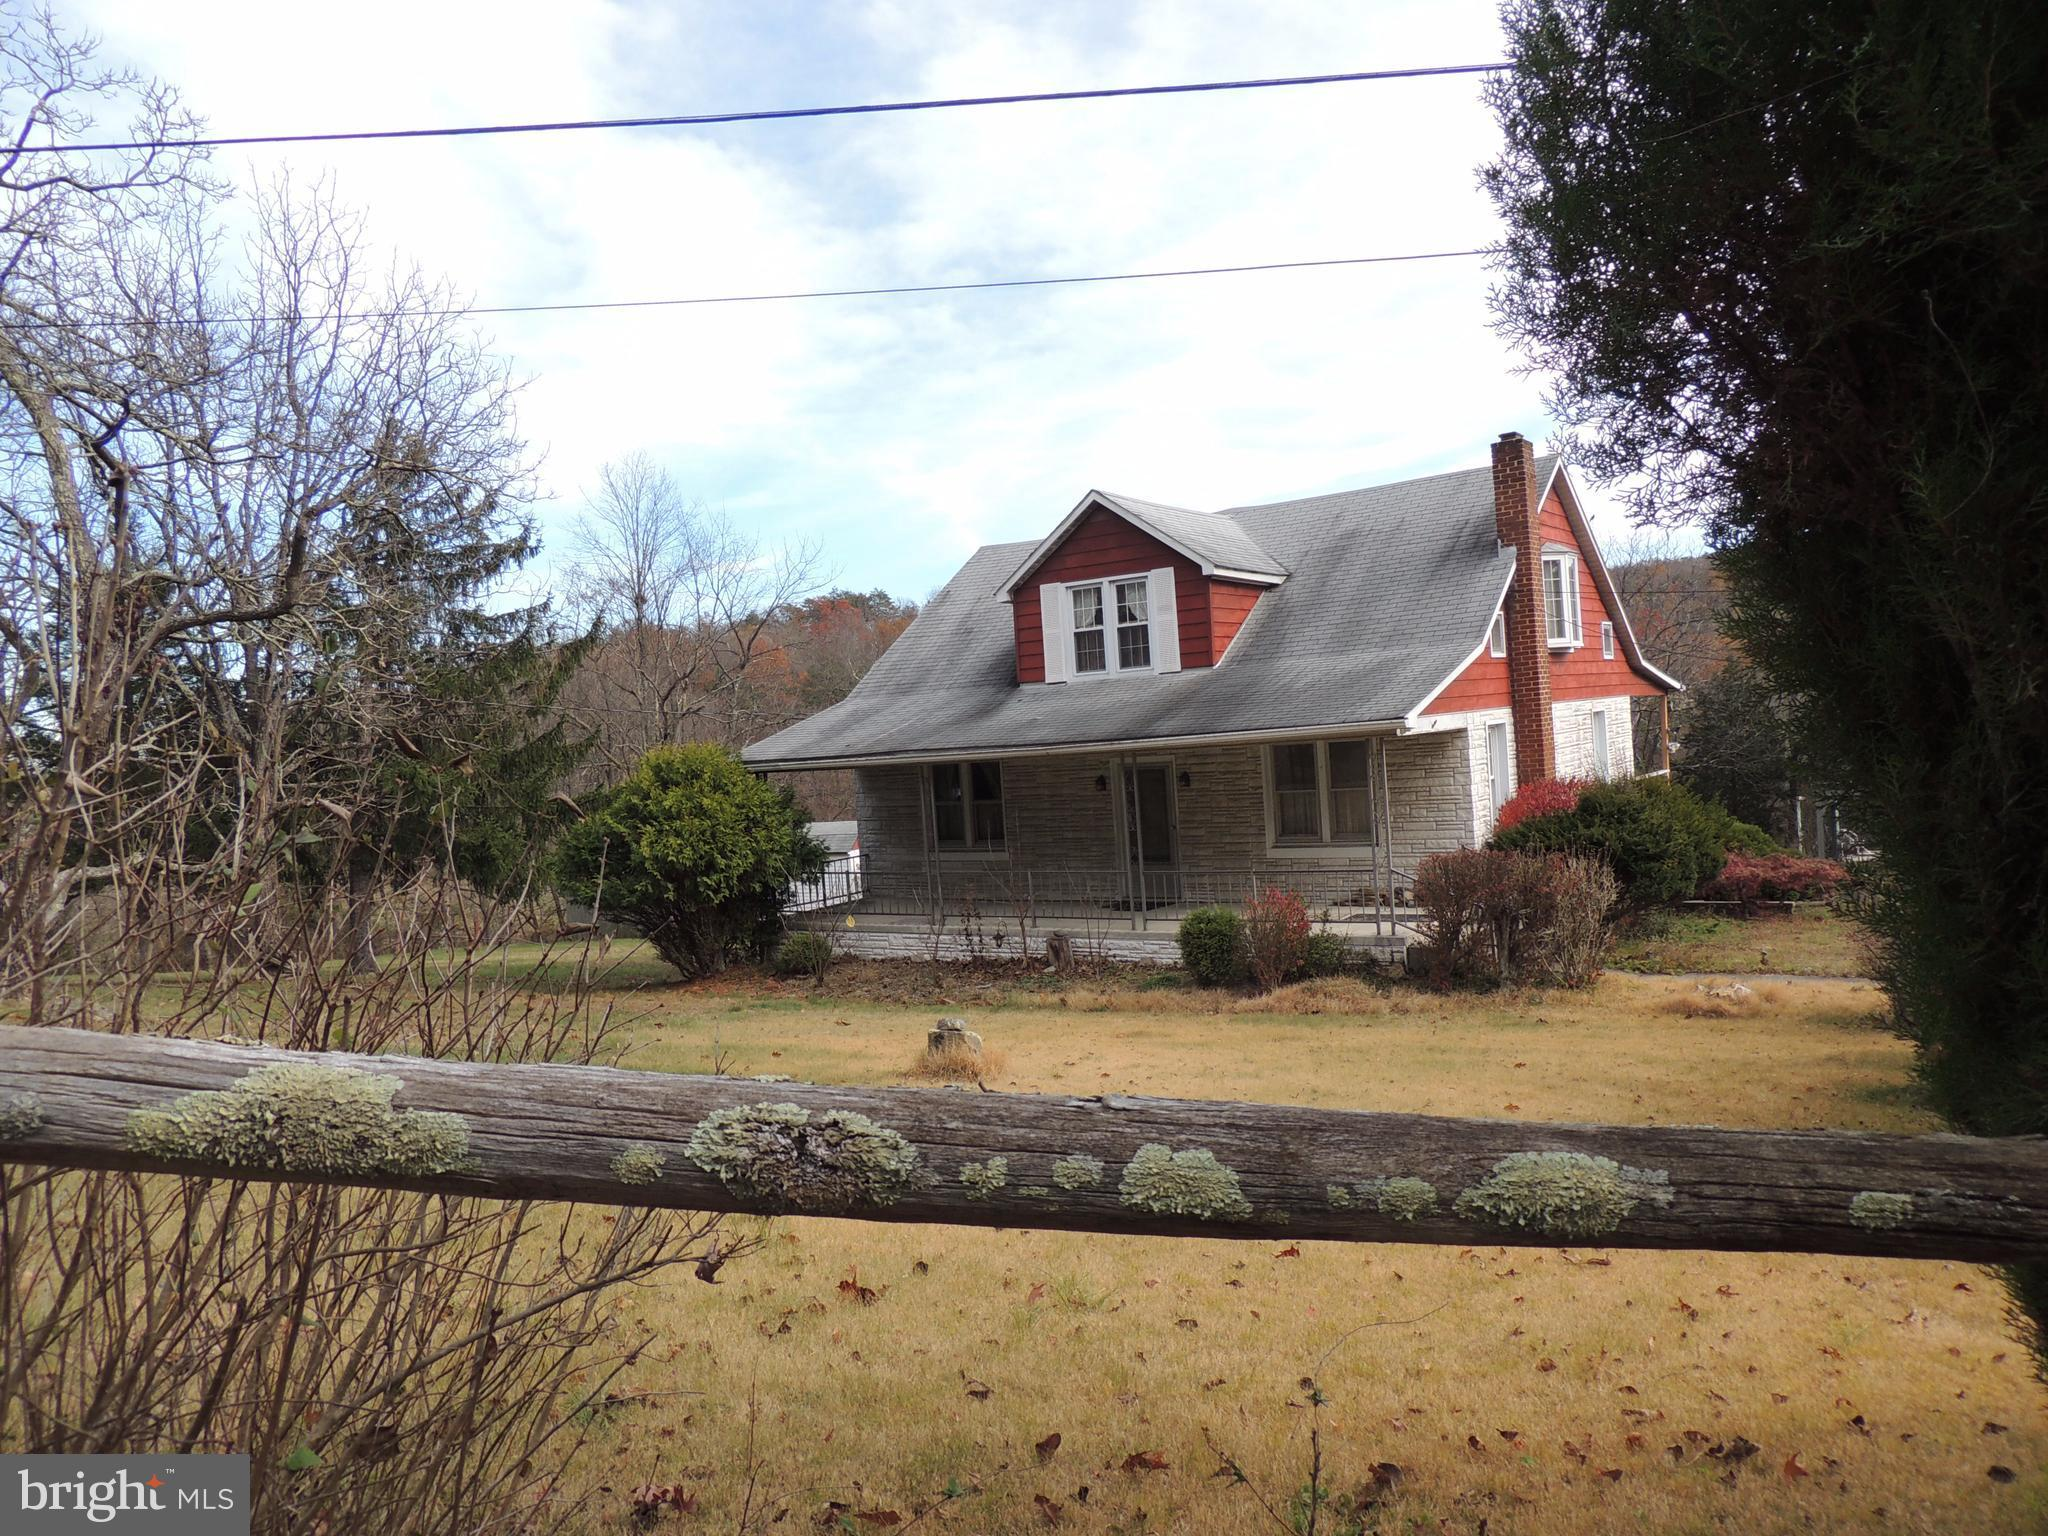 20977 KNOBLEY ROAD, NEW CREEK, WV 26743